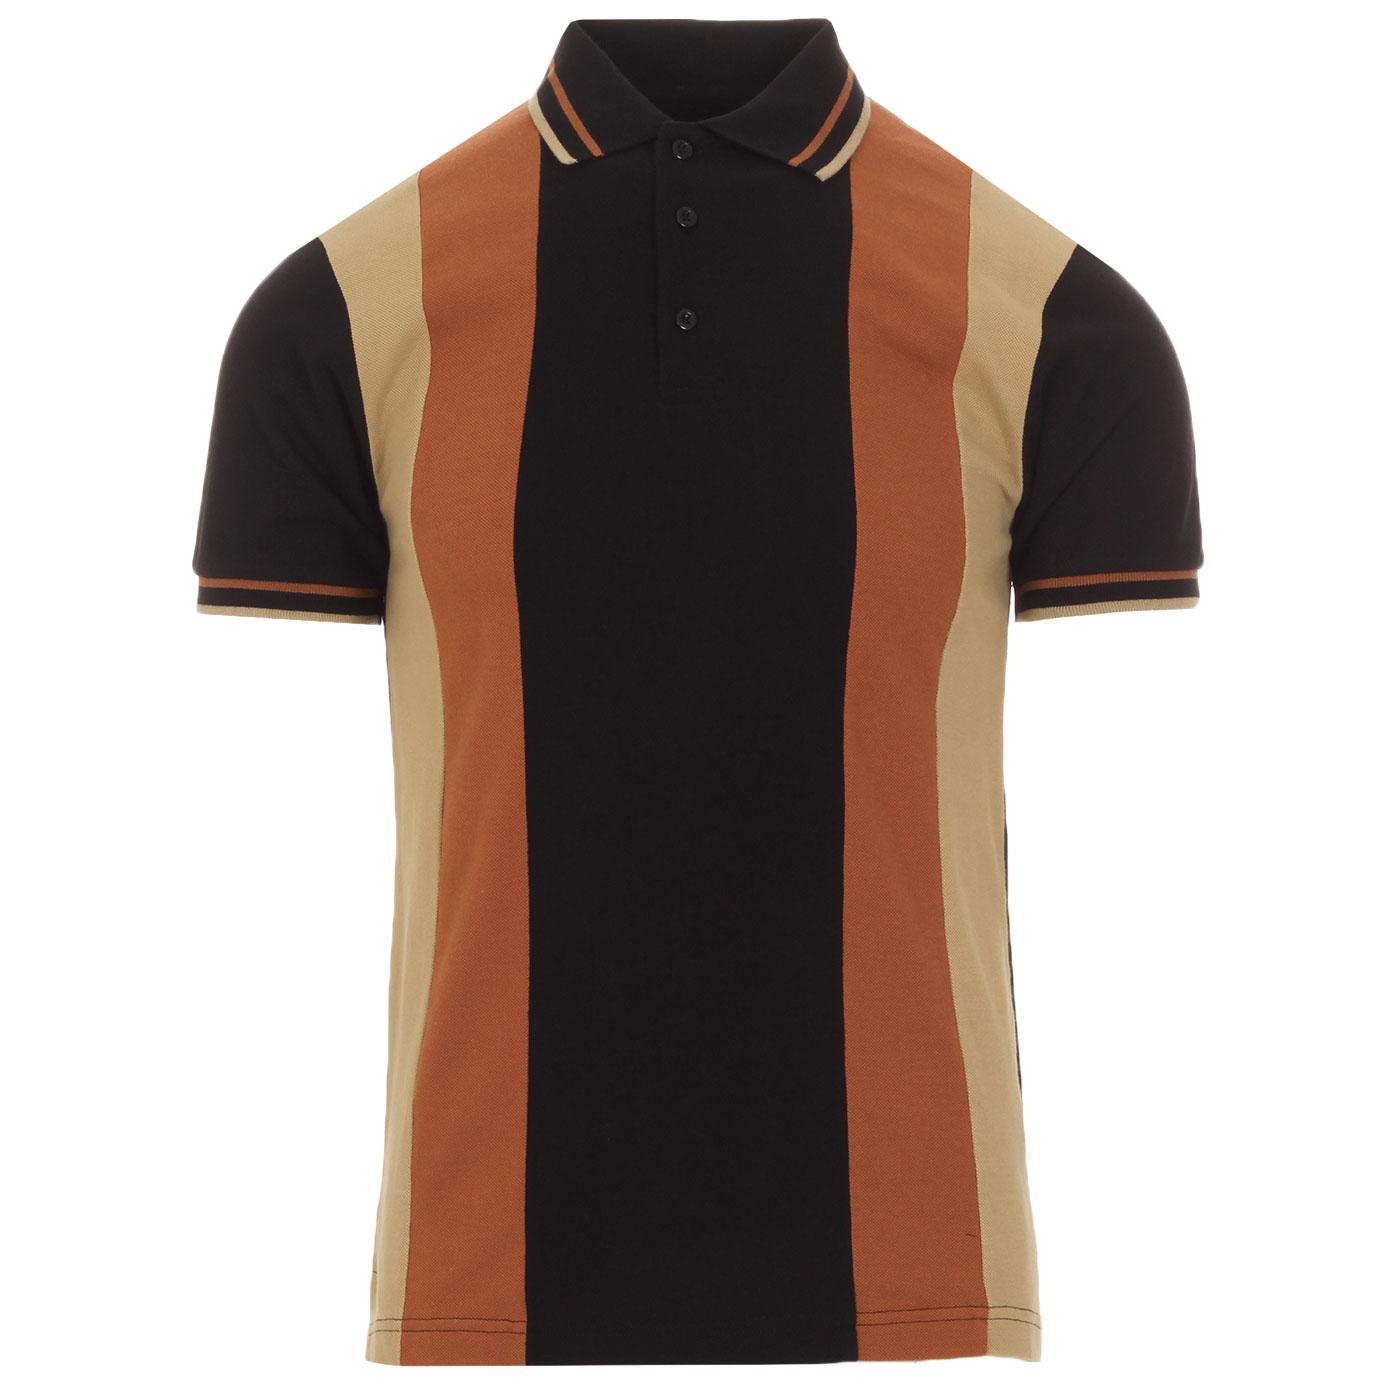 SKA & SOUL Mod Stripe Panel Pique Polo Top (Black)